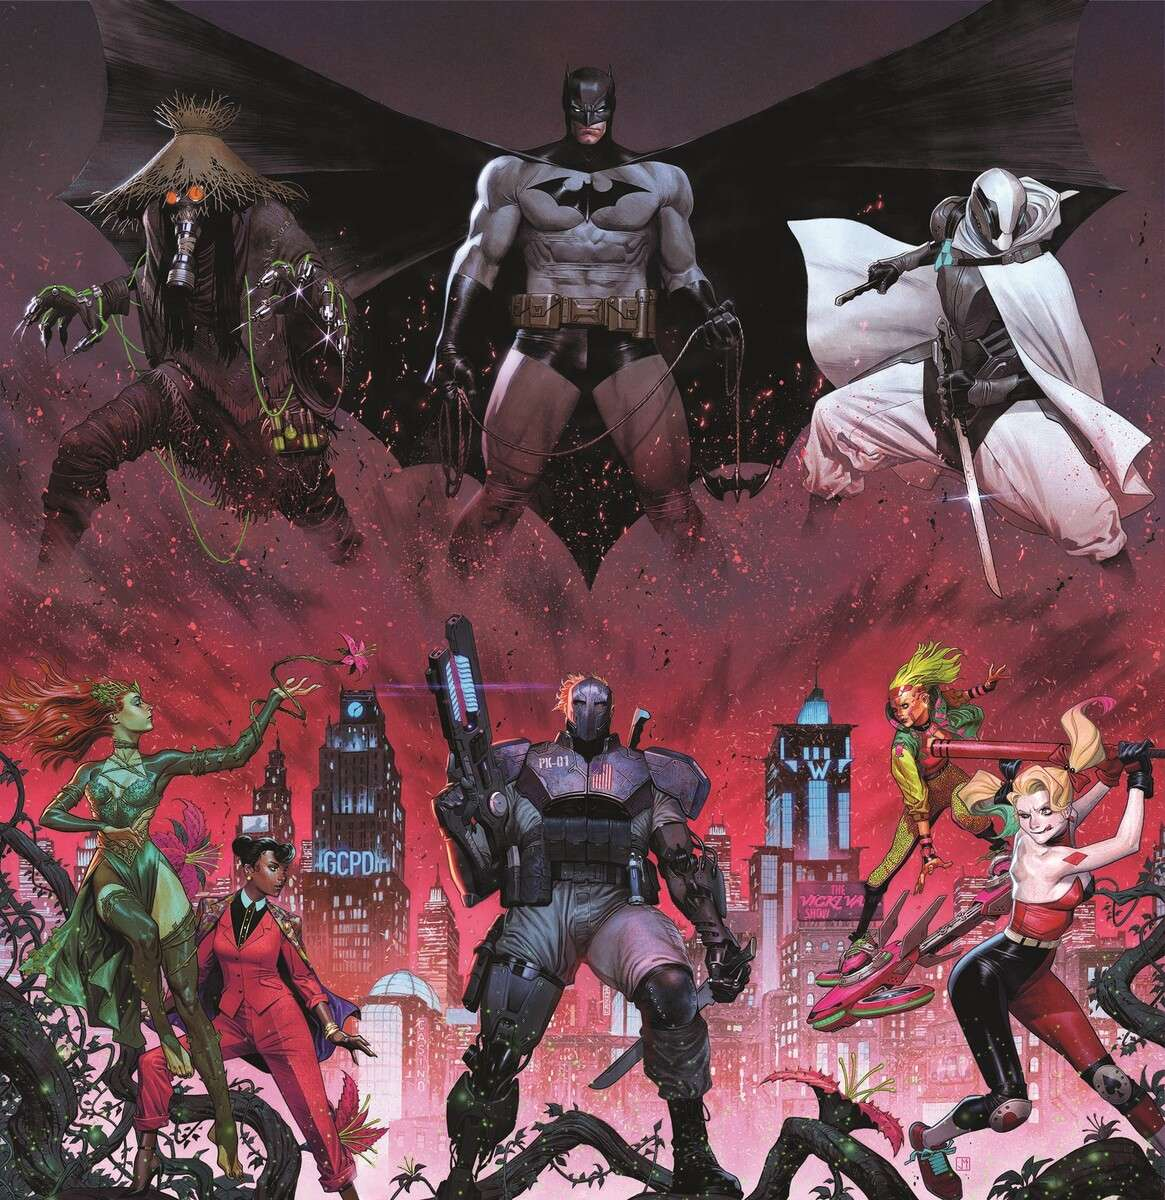 Batman: Fear State writers preview the horrors of Gotham's next event at Comic-Con@Home